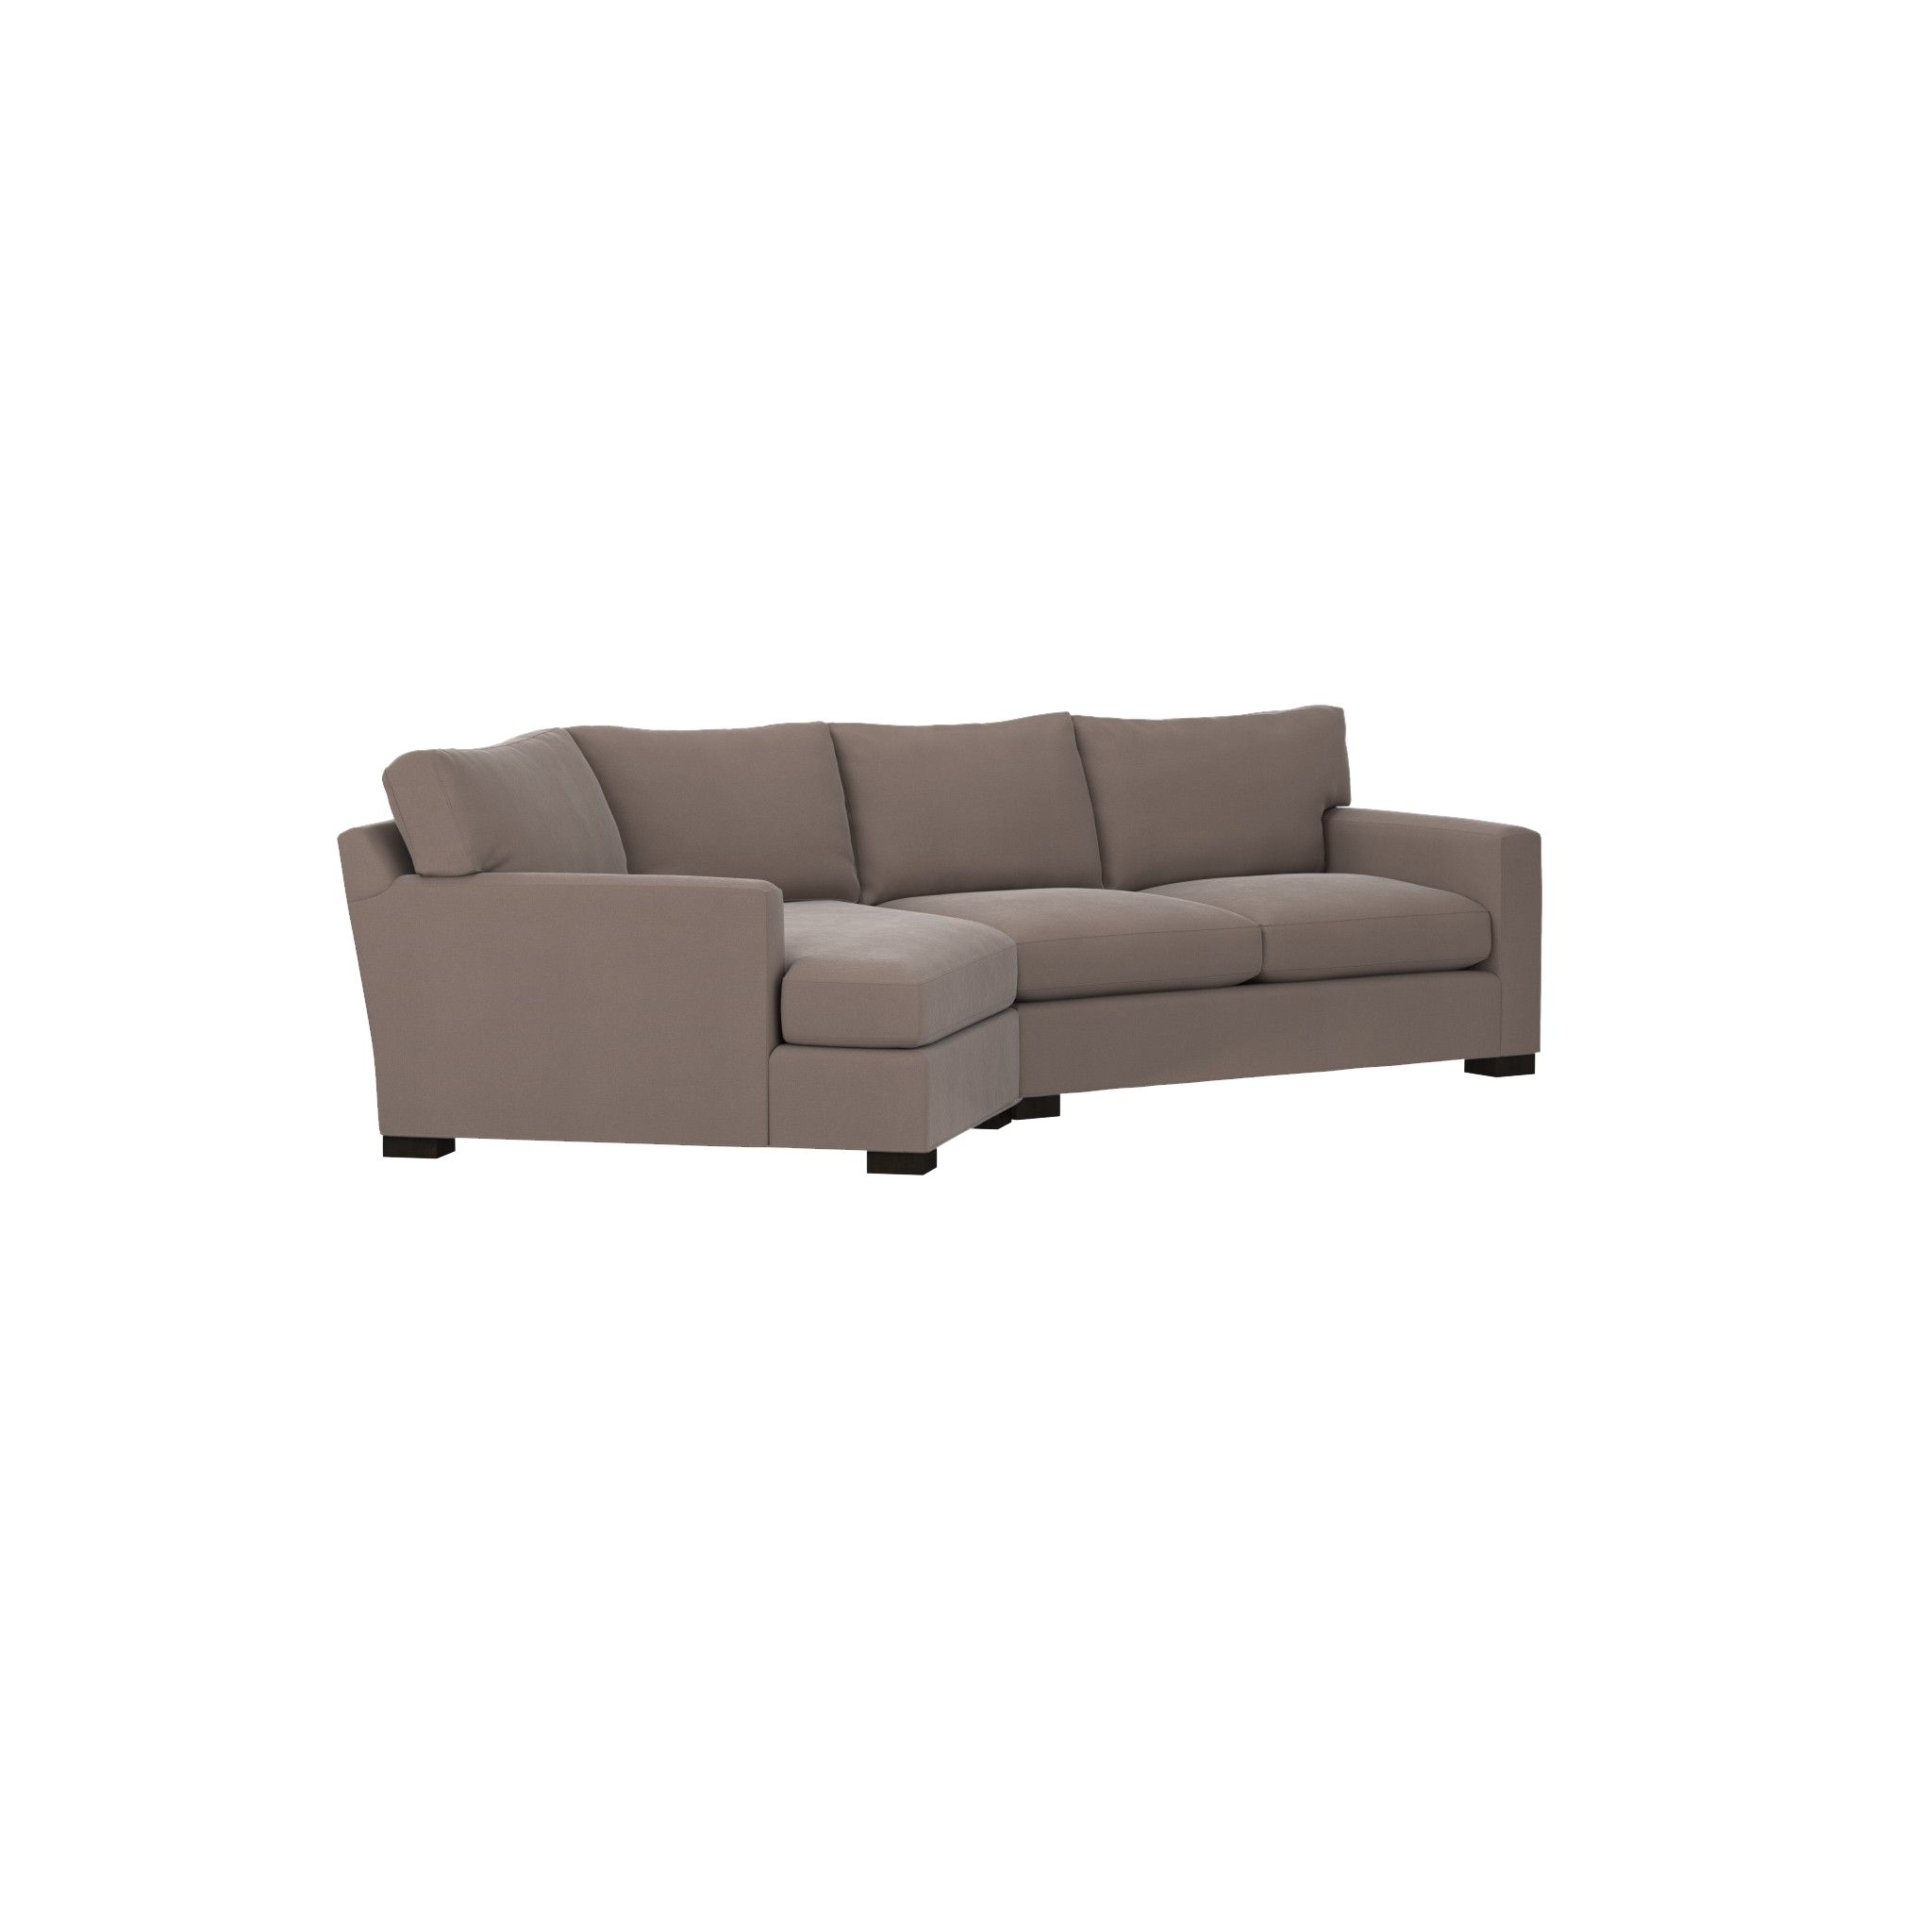 Widely Used Axis Ii 2 Piece Right Arm Angled Chaise Sectional Sofa Crate And In Angled Chaise Sofas (View 15 of 15)